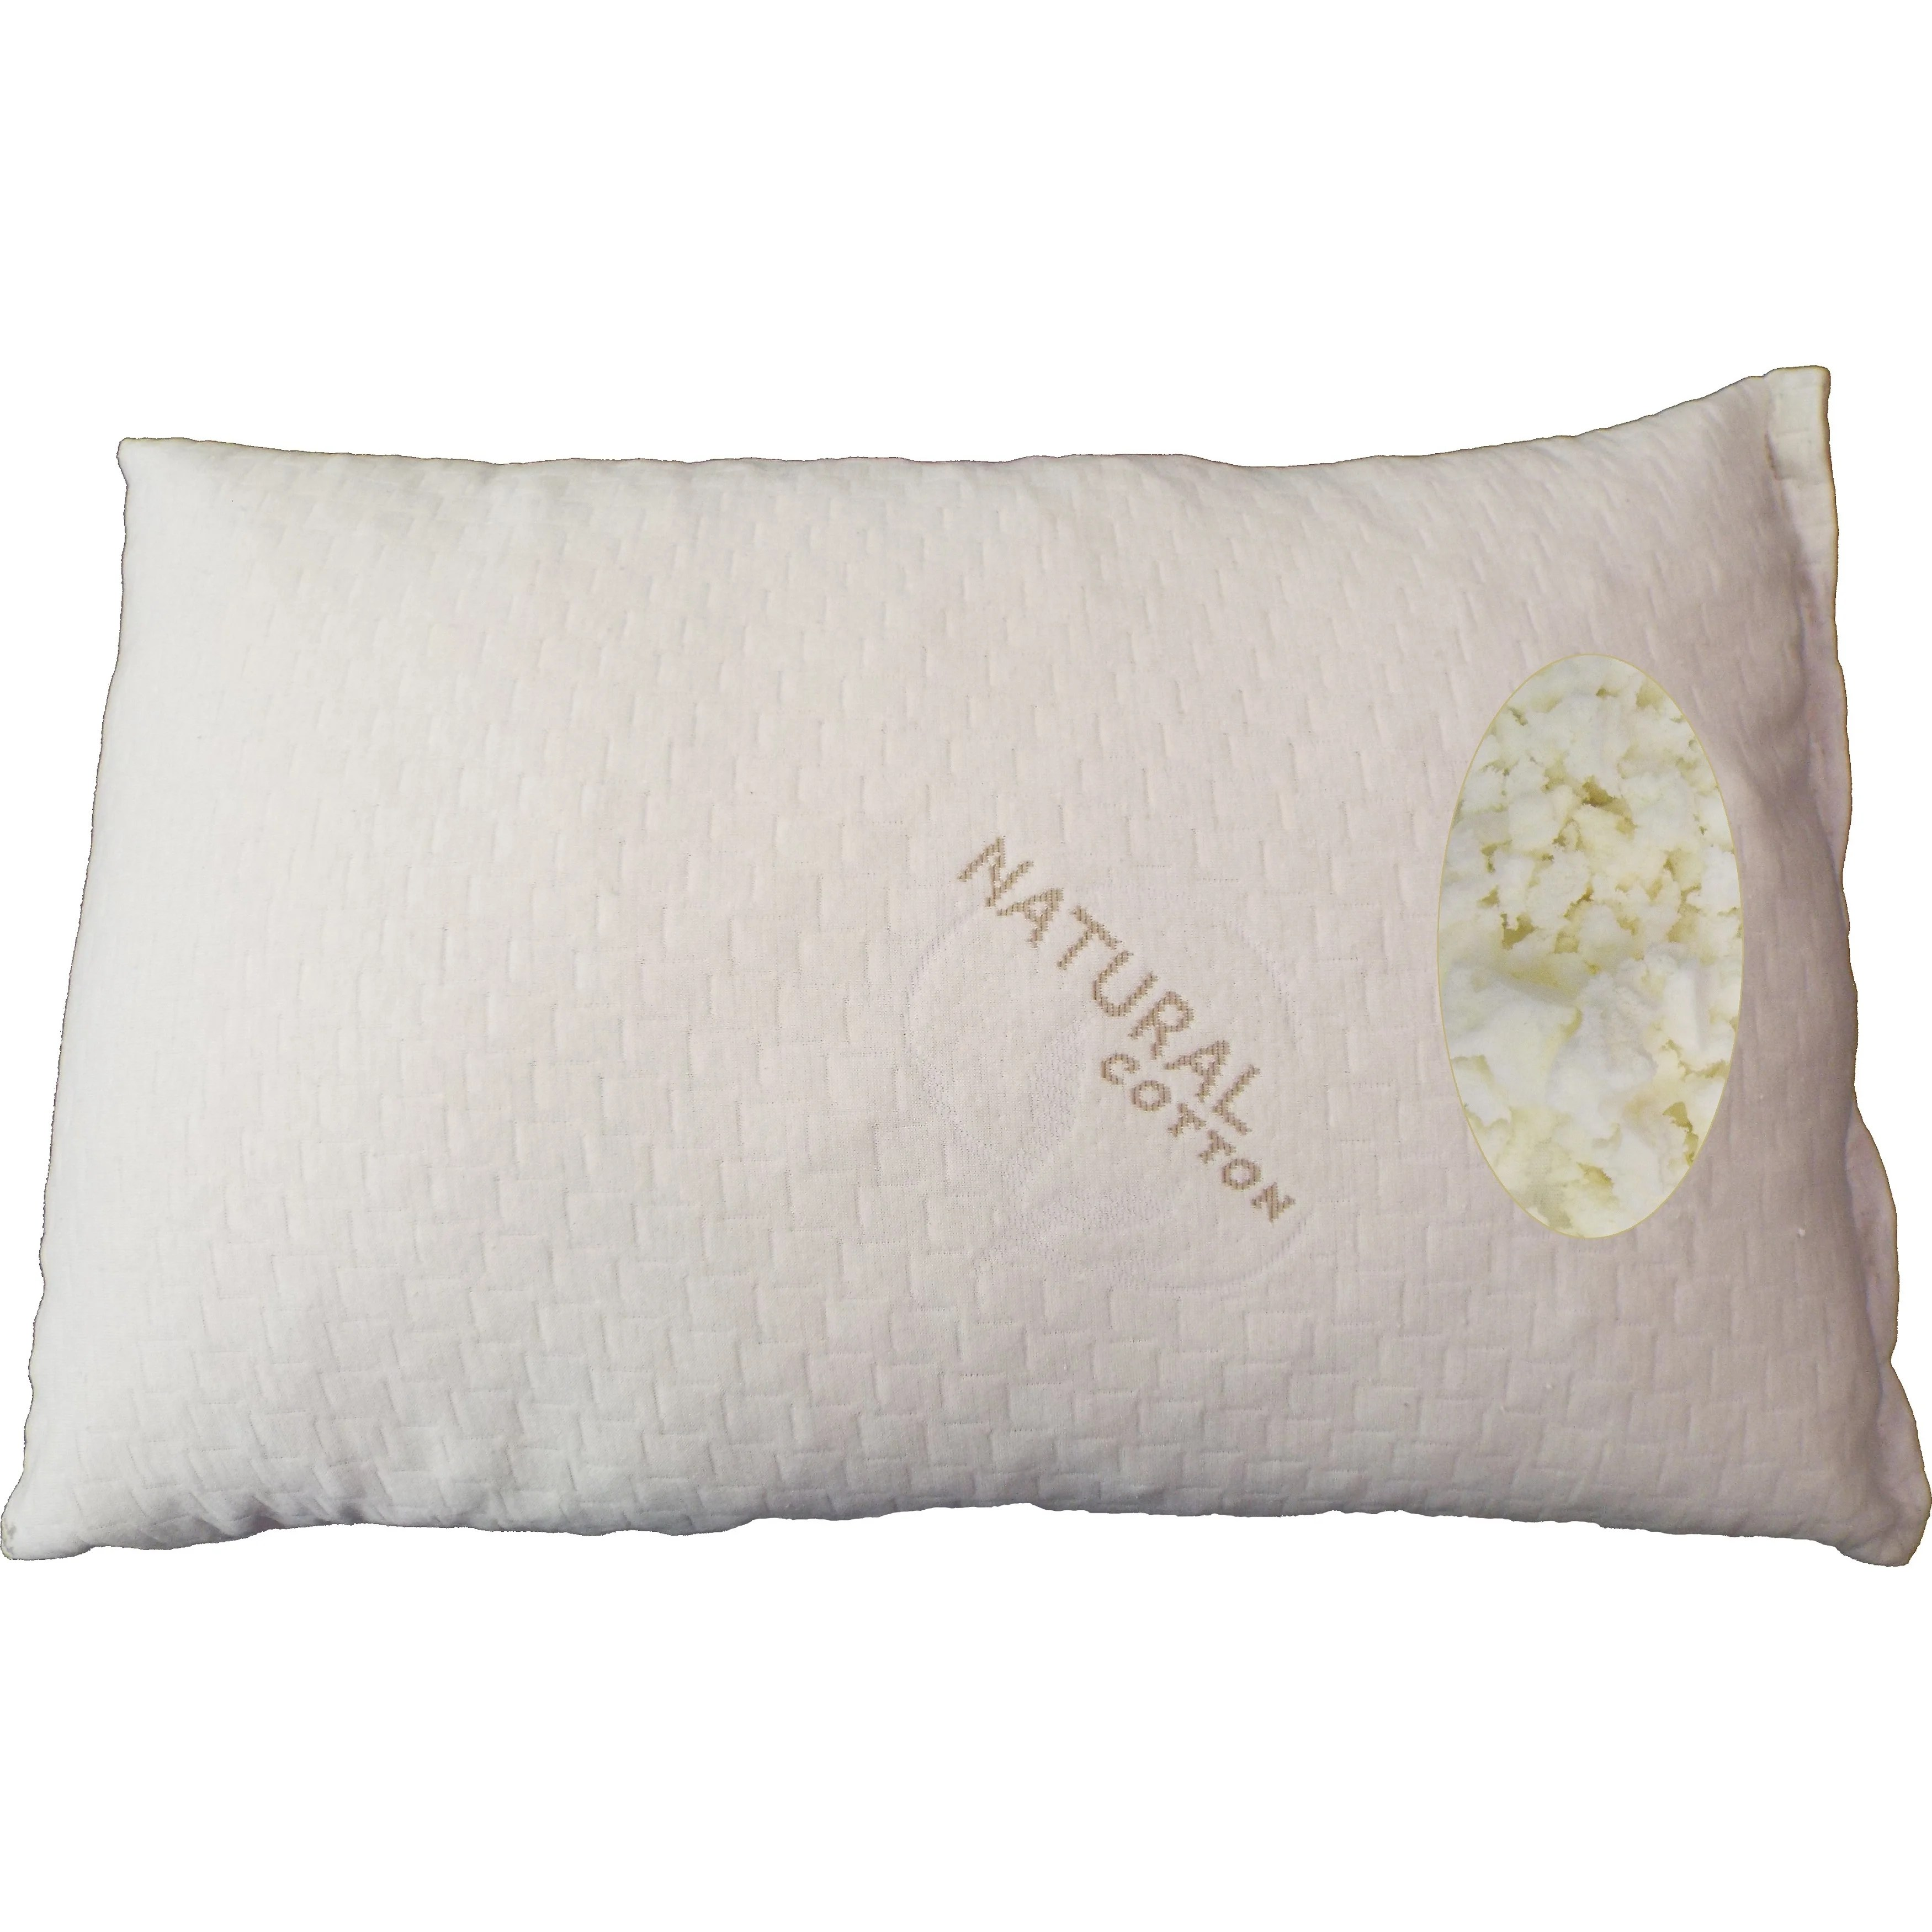 Latex Pillow Somette Shredded King Size Latex Pillow With Natural Cotton Cover Set Of 1 Or 2